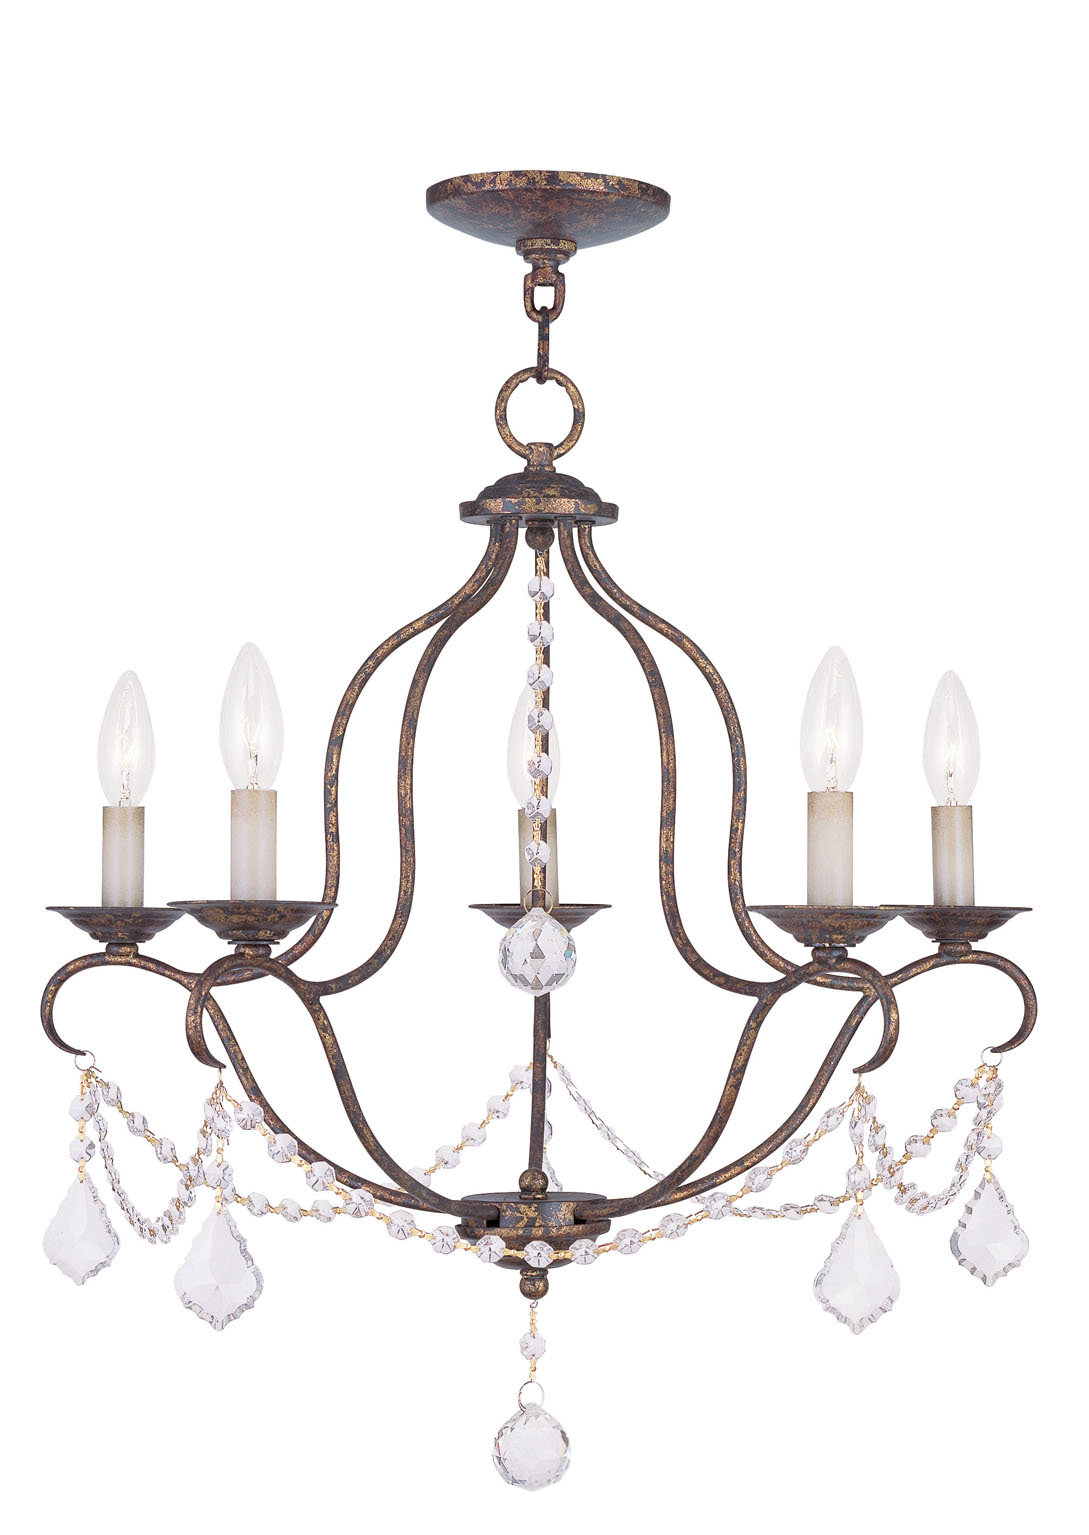 Accomac 5-Light Candle-Style Chandelier pertaining to Corneau 5-Light Chandeliers (Image 2 of 30)